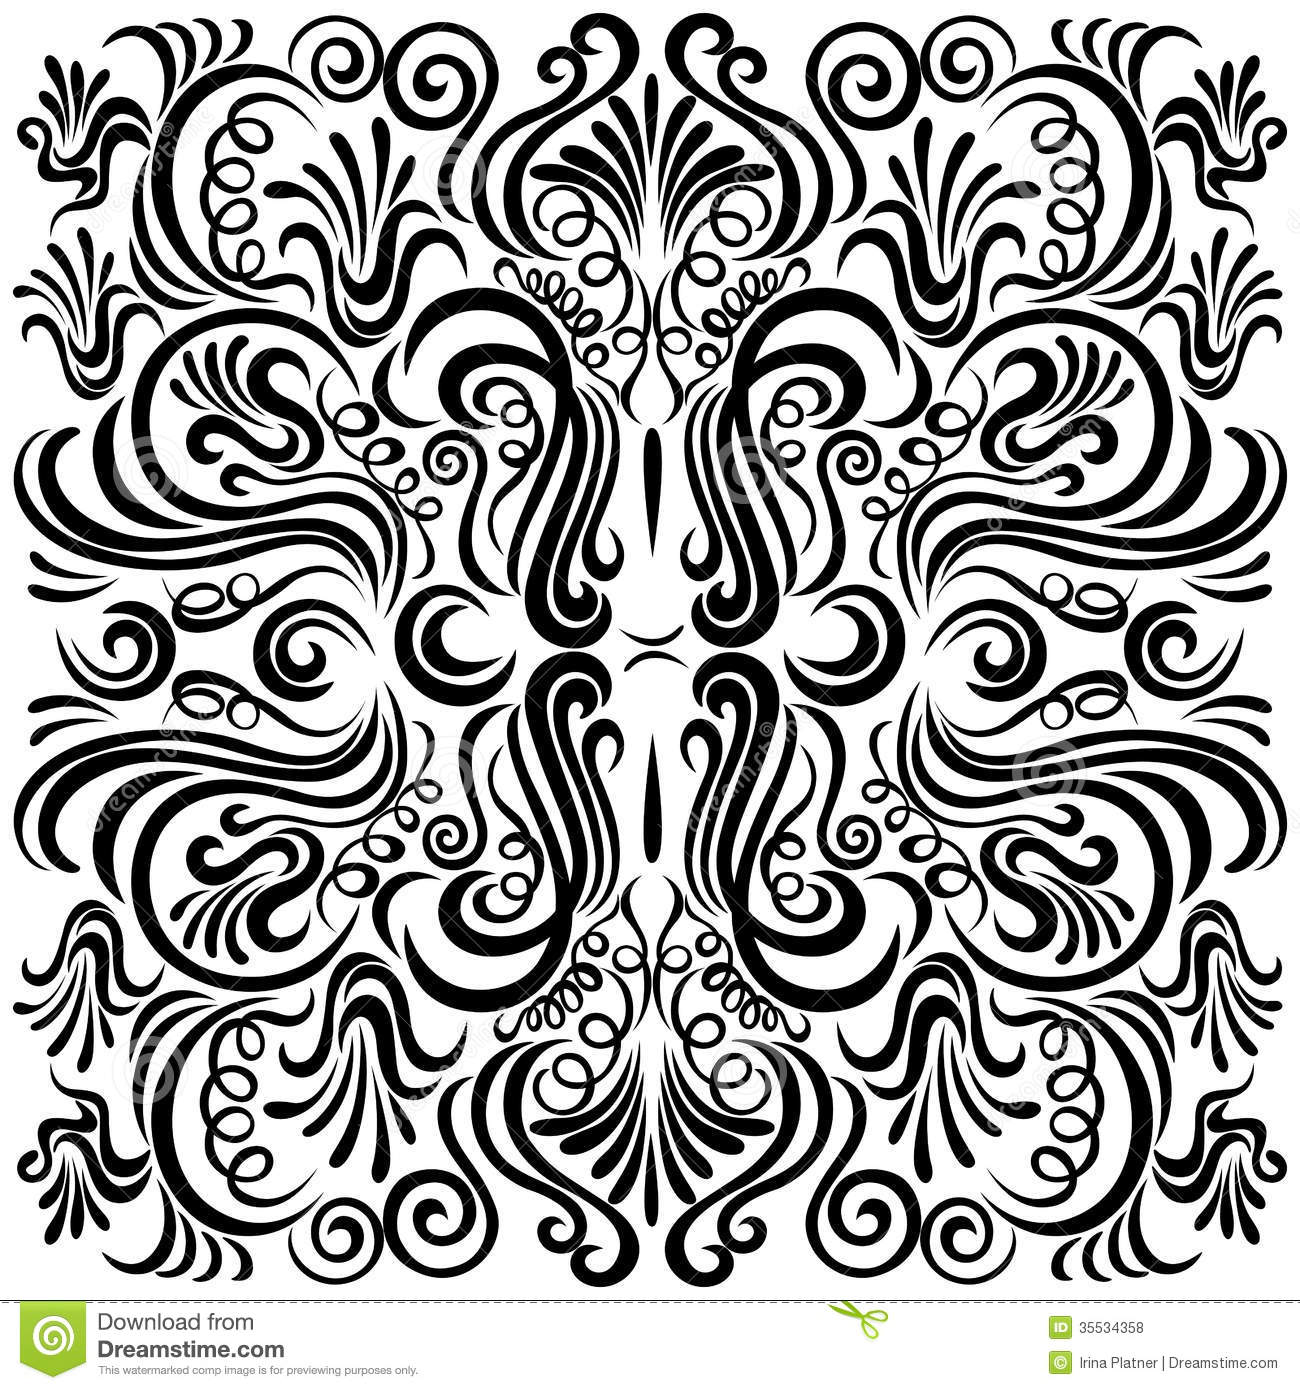 Black Flower And Bud Pattern Royalty Free Stock Photos: Design Pattern With Swirling Floral Decorative Orn Stock